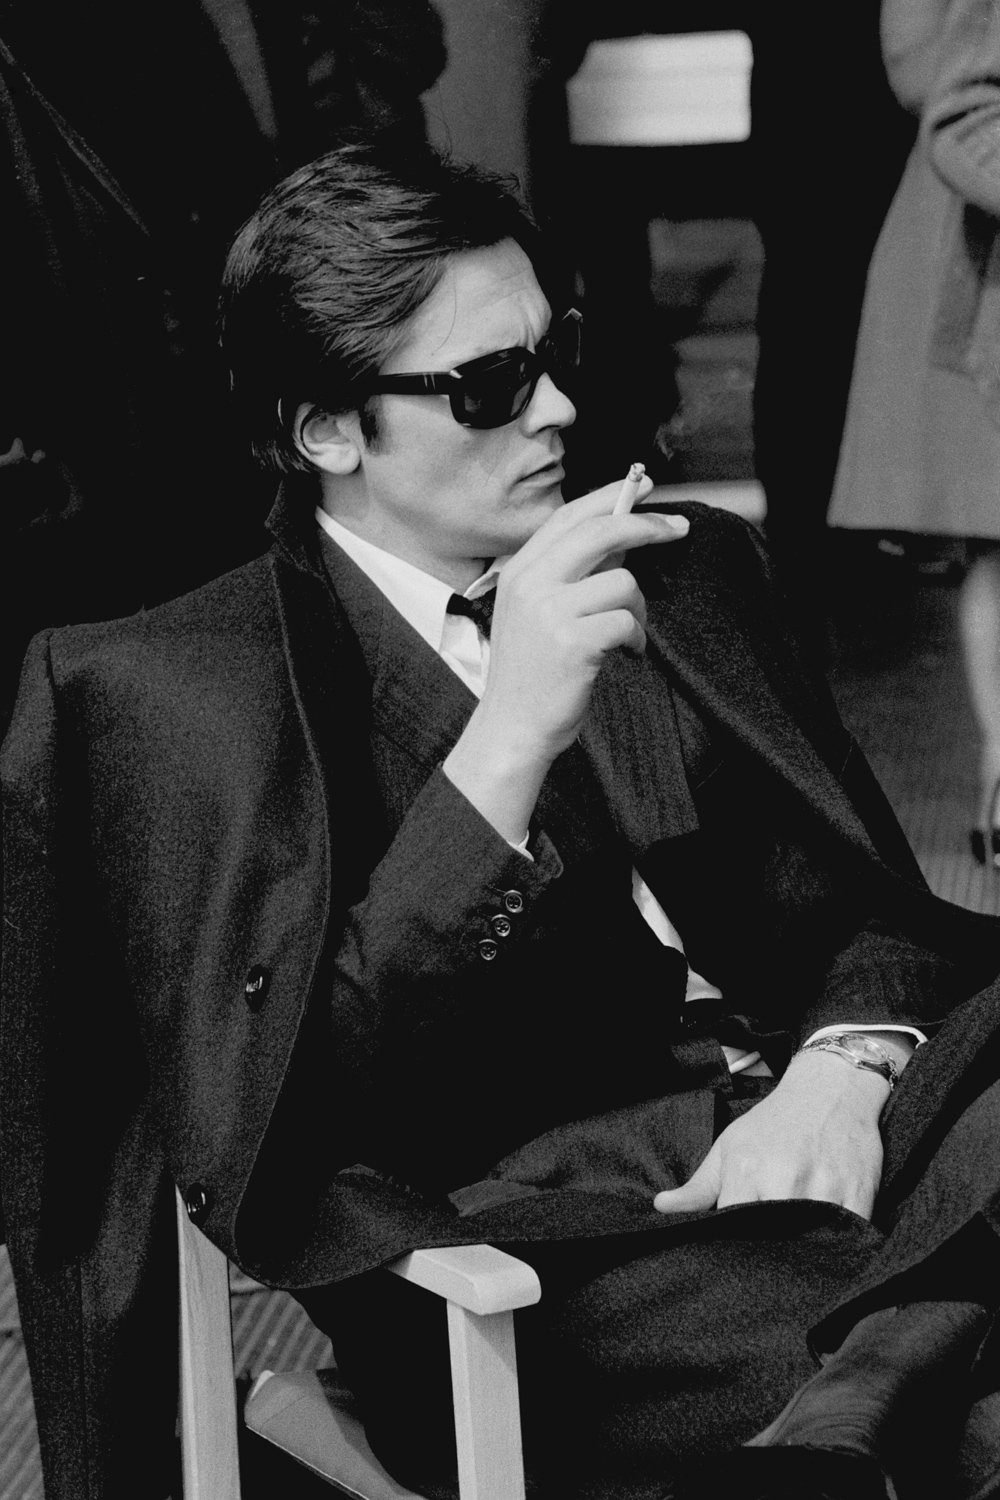 The French actor Alain Delon appears while making 'The Sicilian Clan' in Rome in 1969.